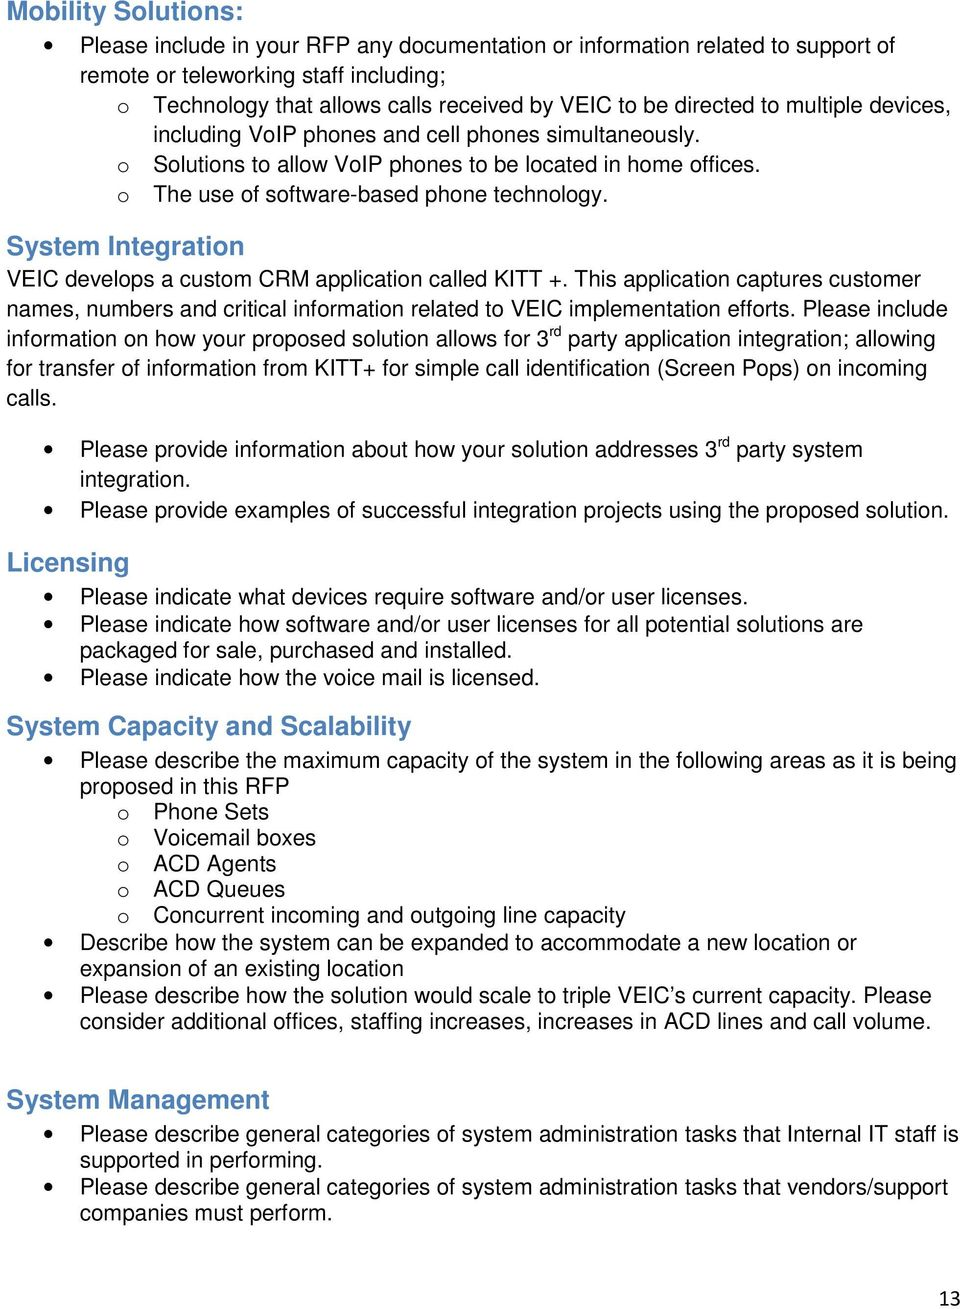 System Integration VEIC develops a custom CRM application called KITT +. This application captures customer names, numbers and critical information related to VEIC implementation efforts.